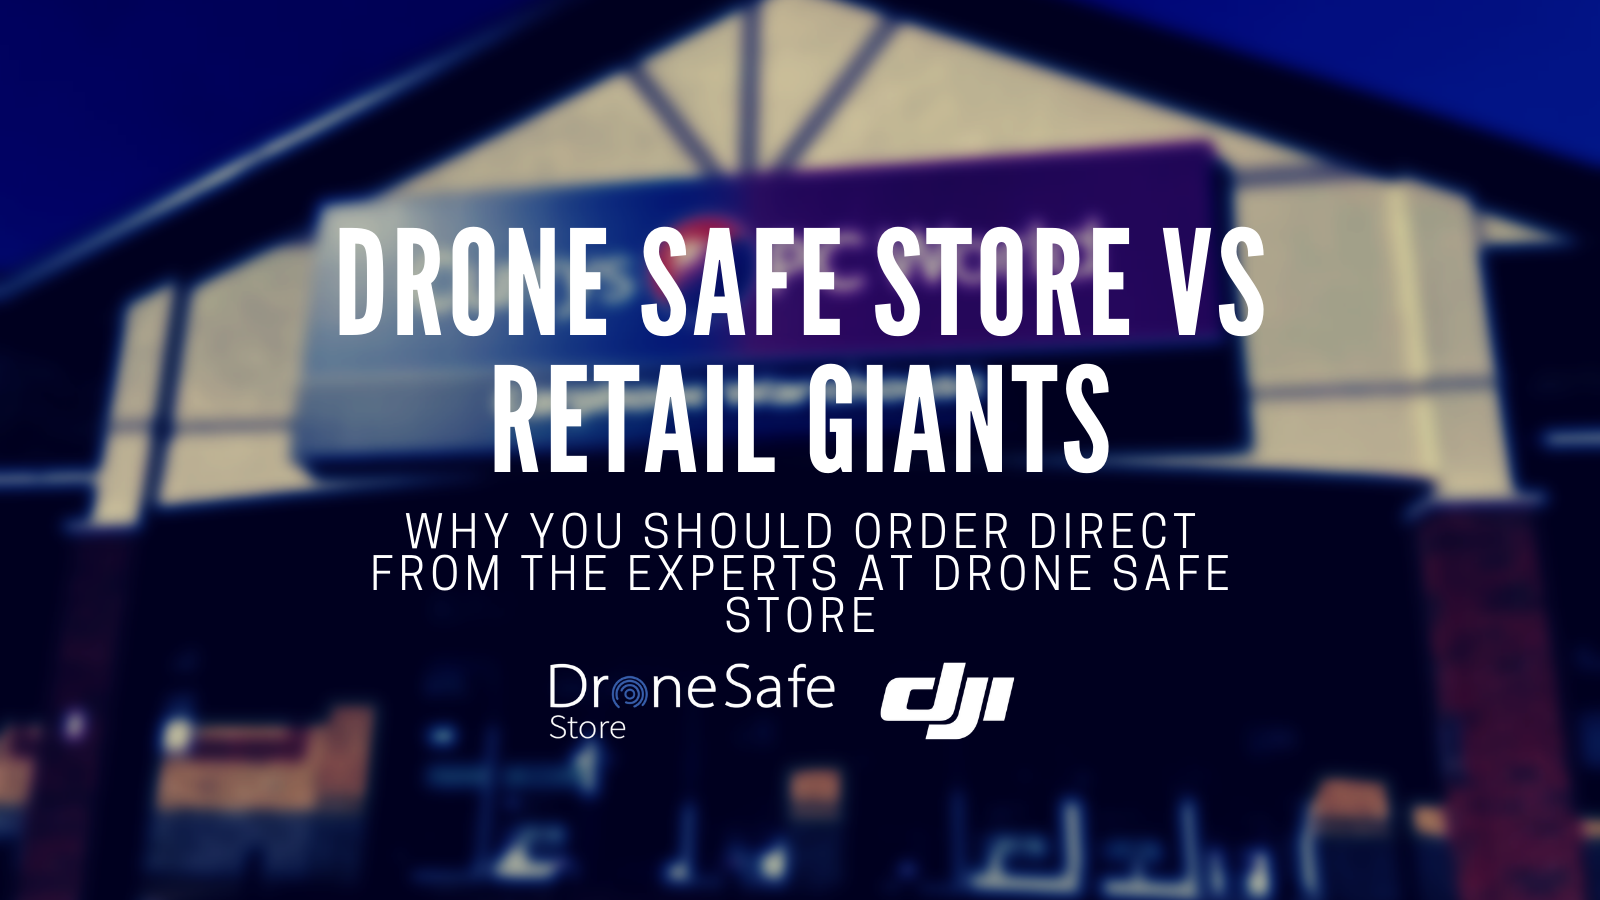 Drone Safe Store VS Retail Giants - Order Direct From Drone Safe Store